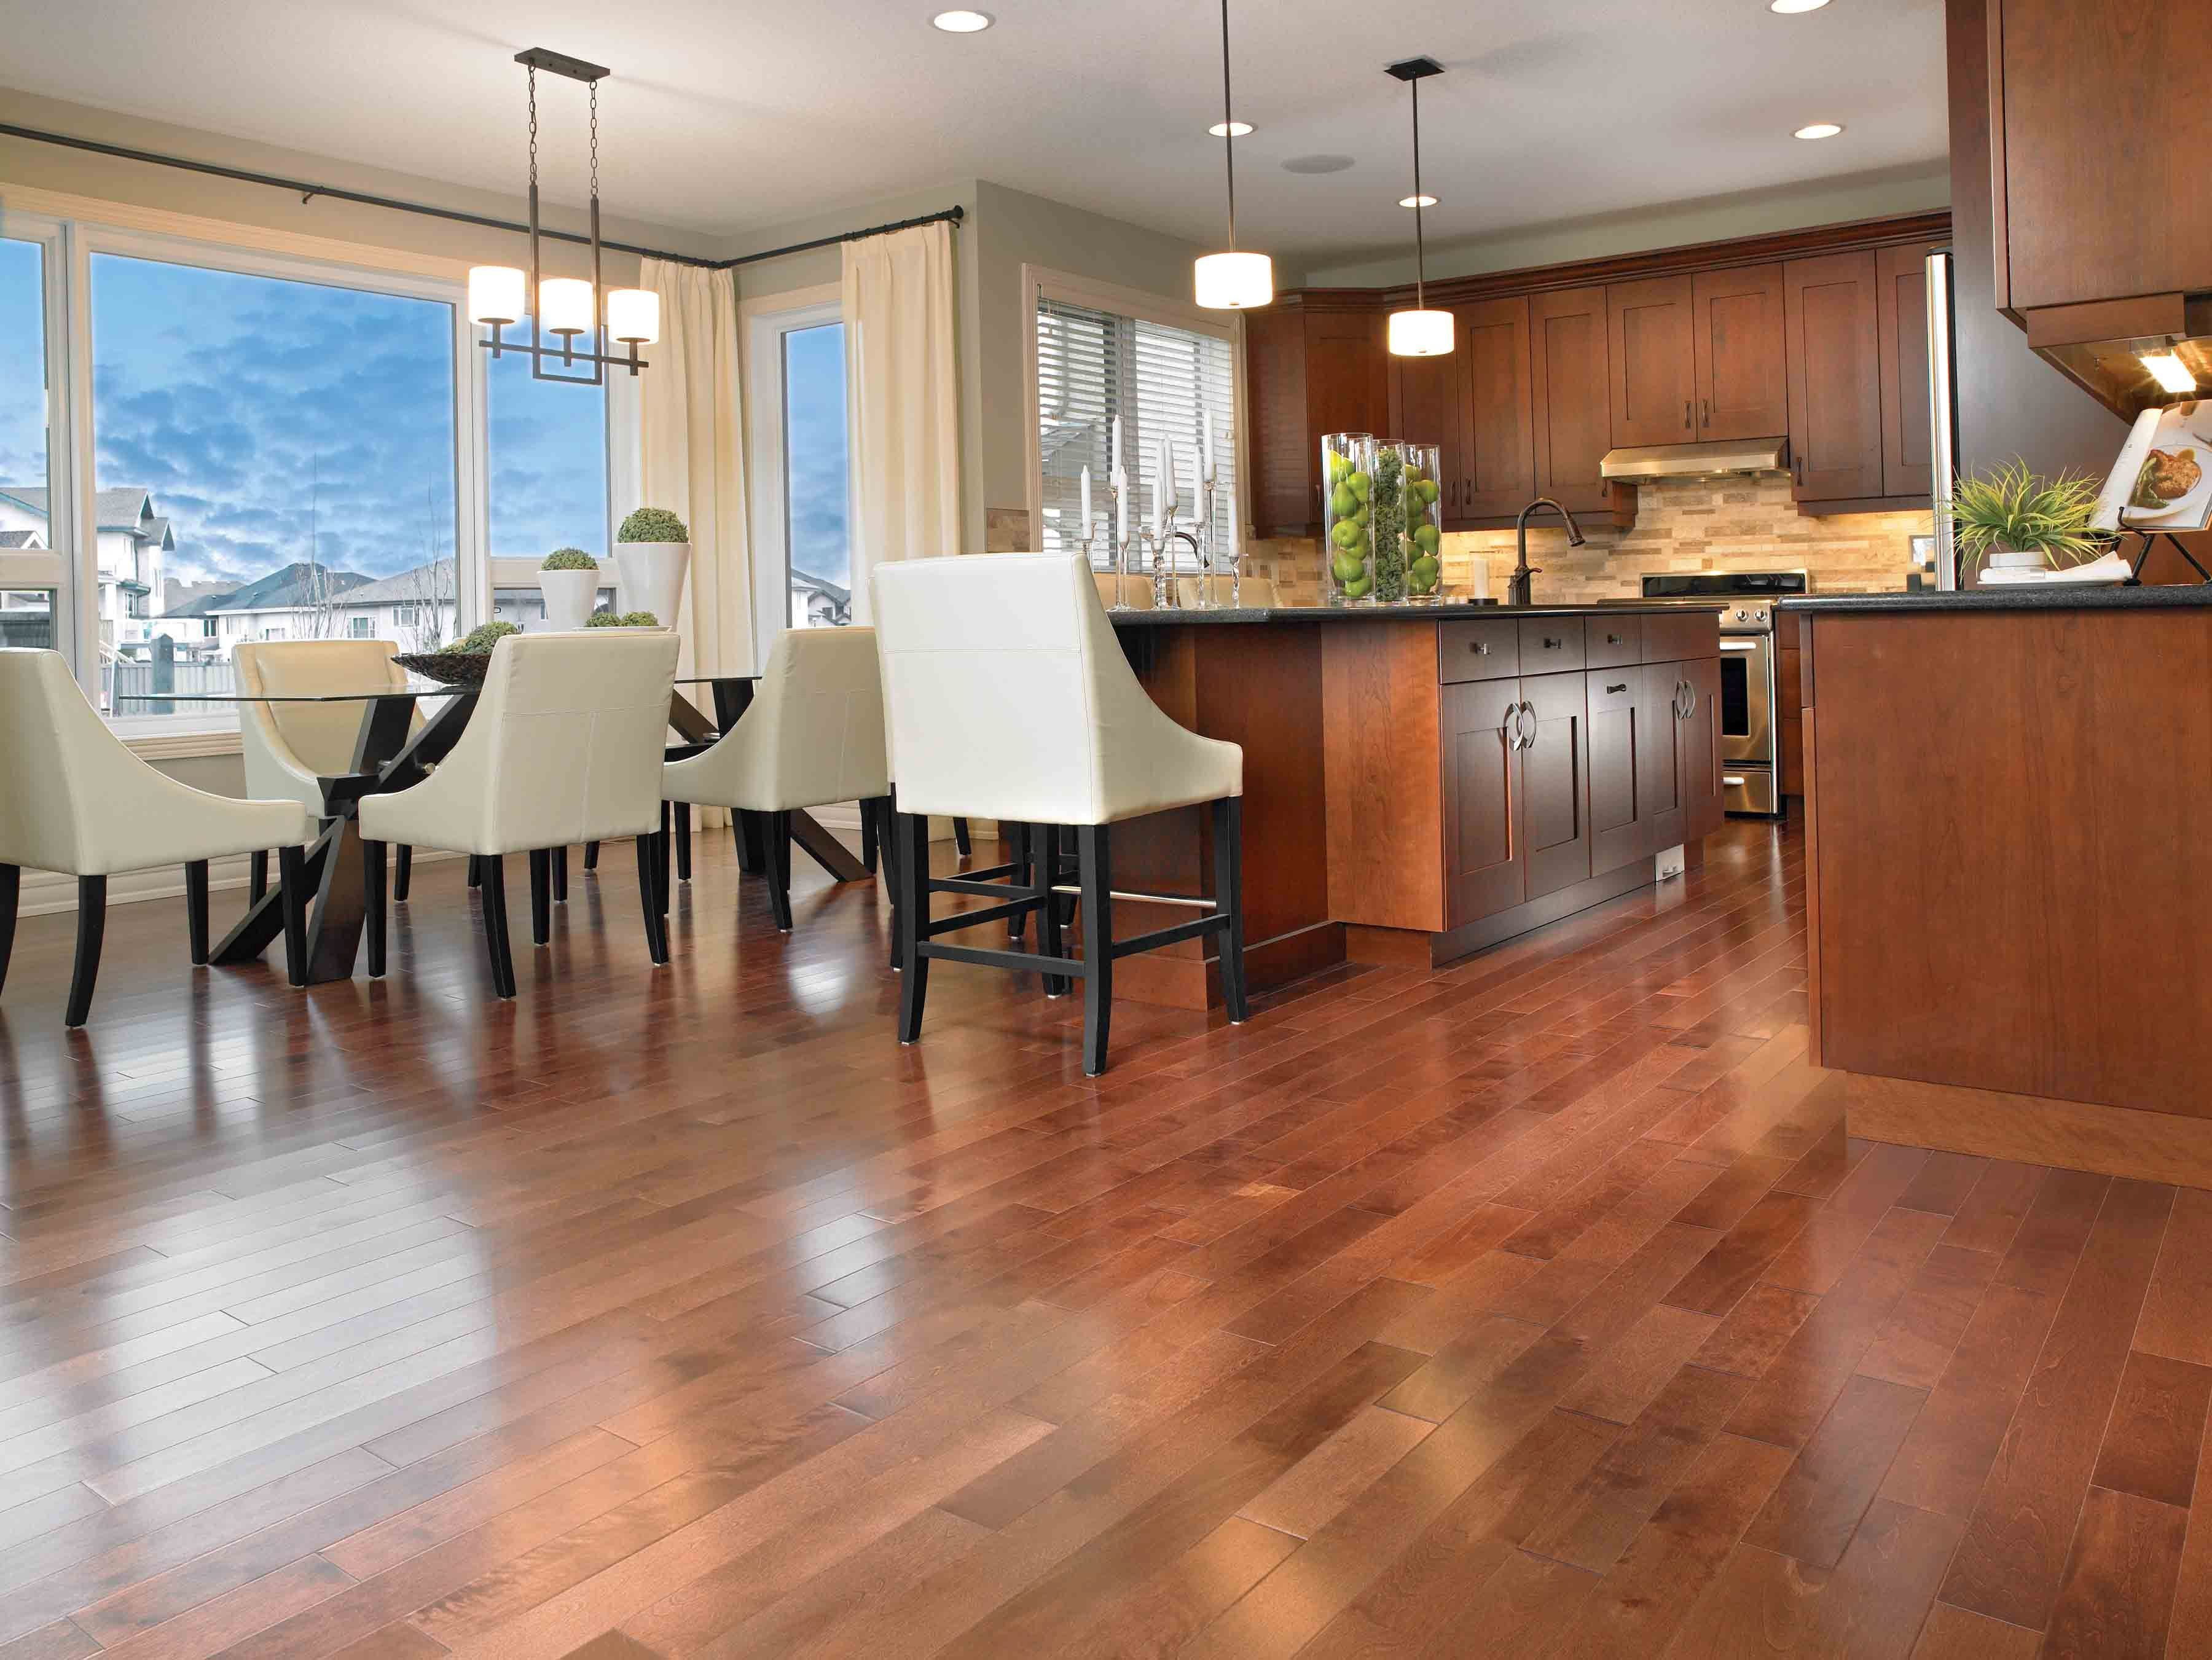 Interior : Delightful Laminate Wood Flooring Ideas Red Cherry Wood